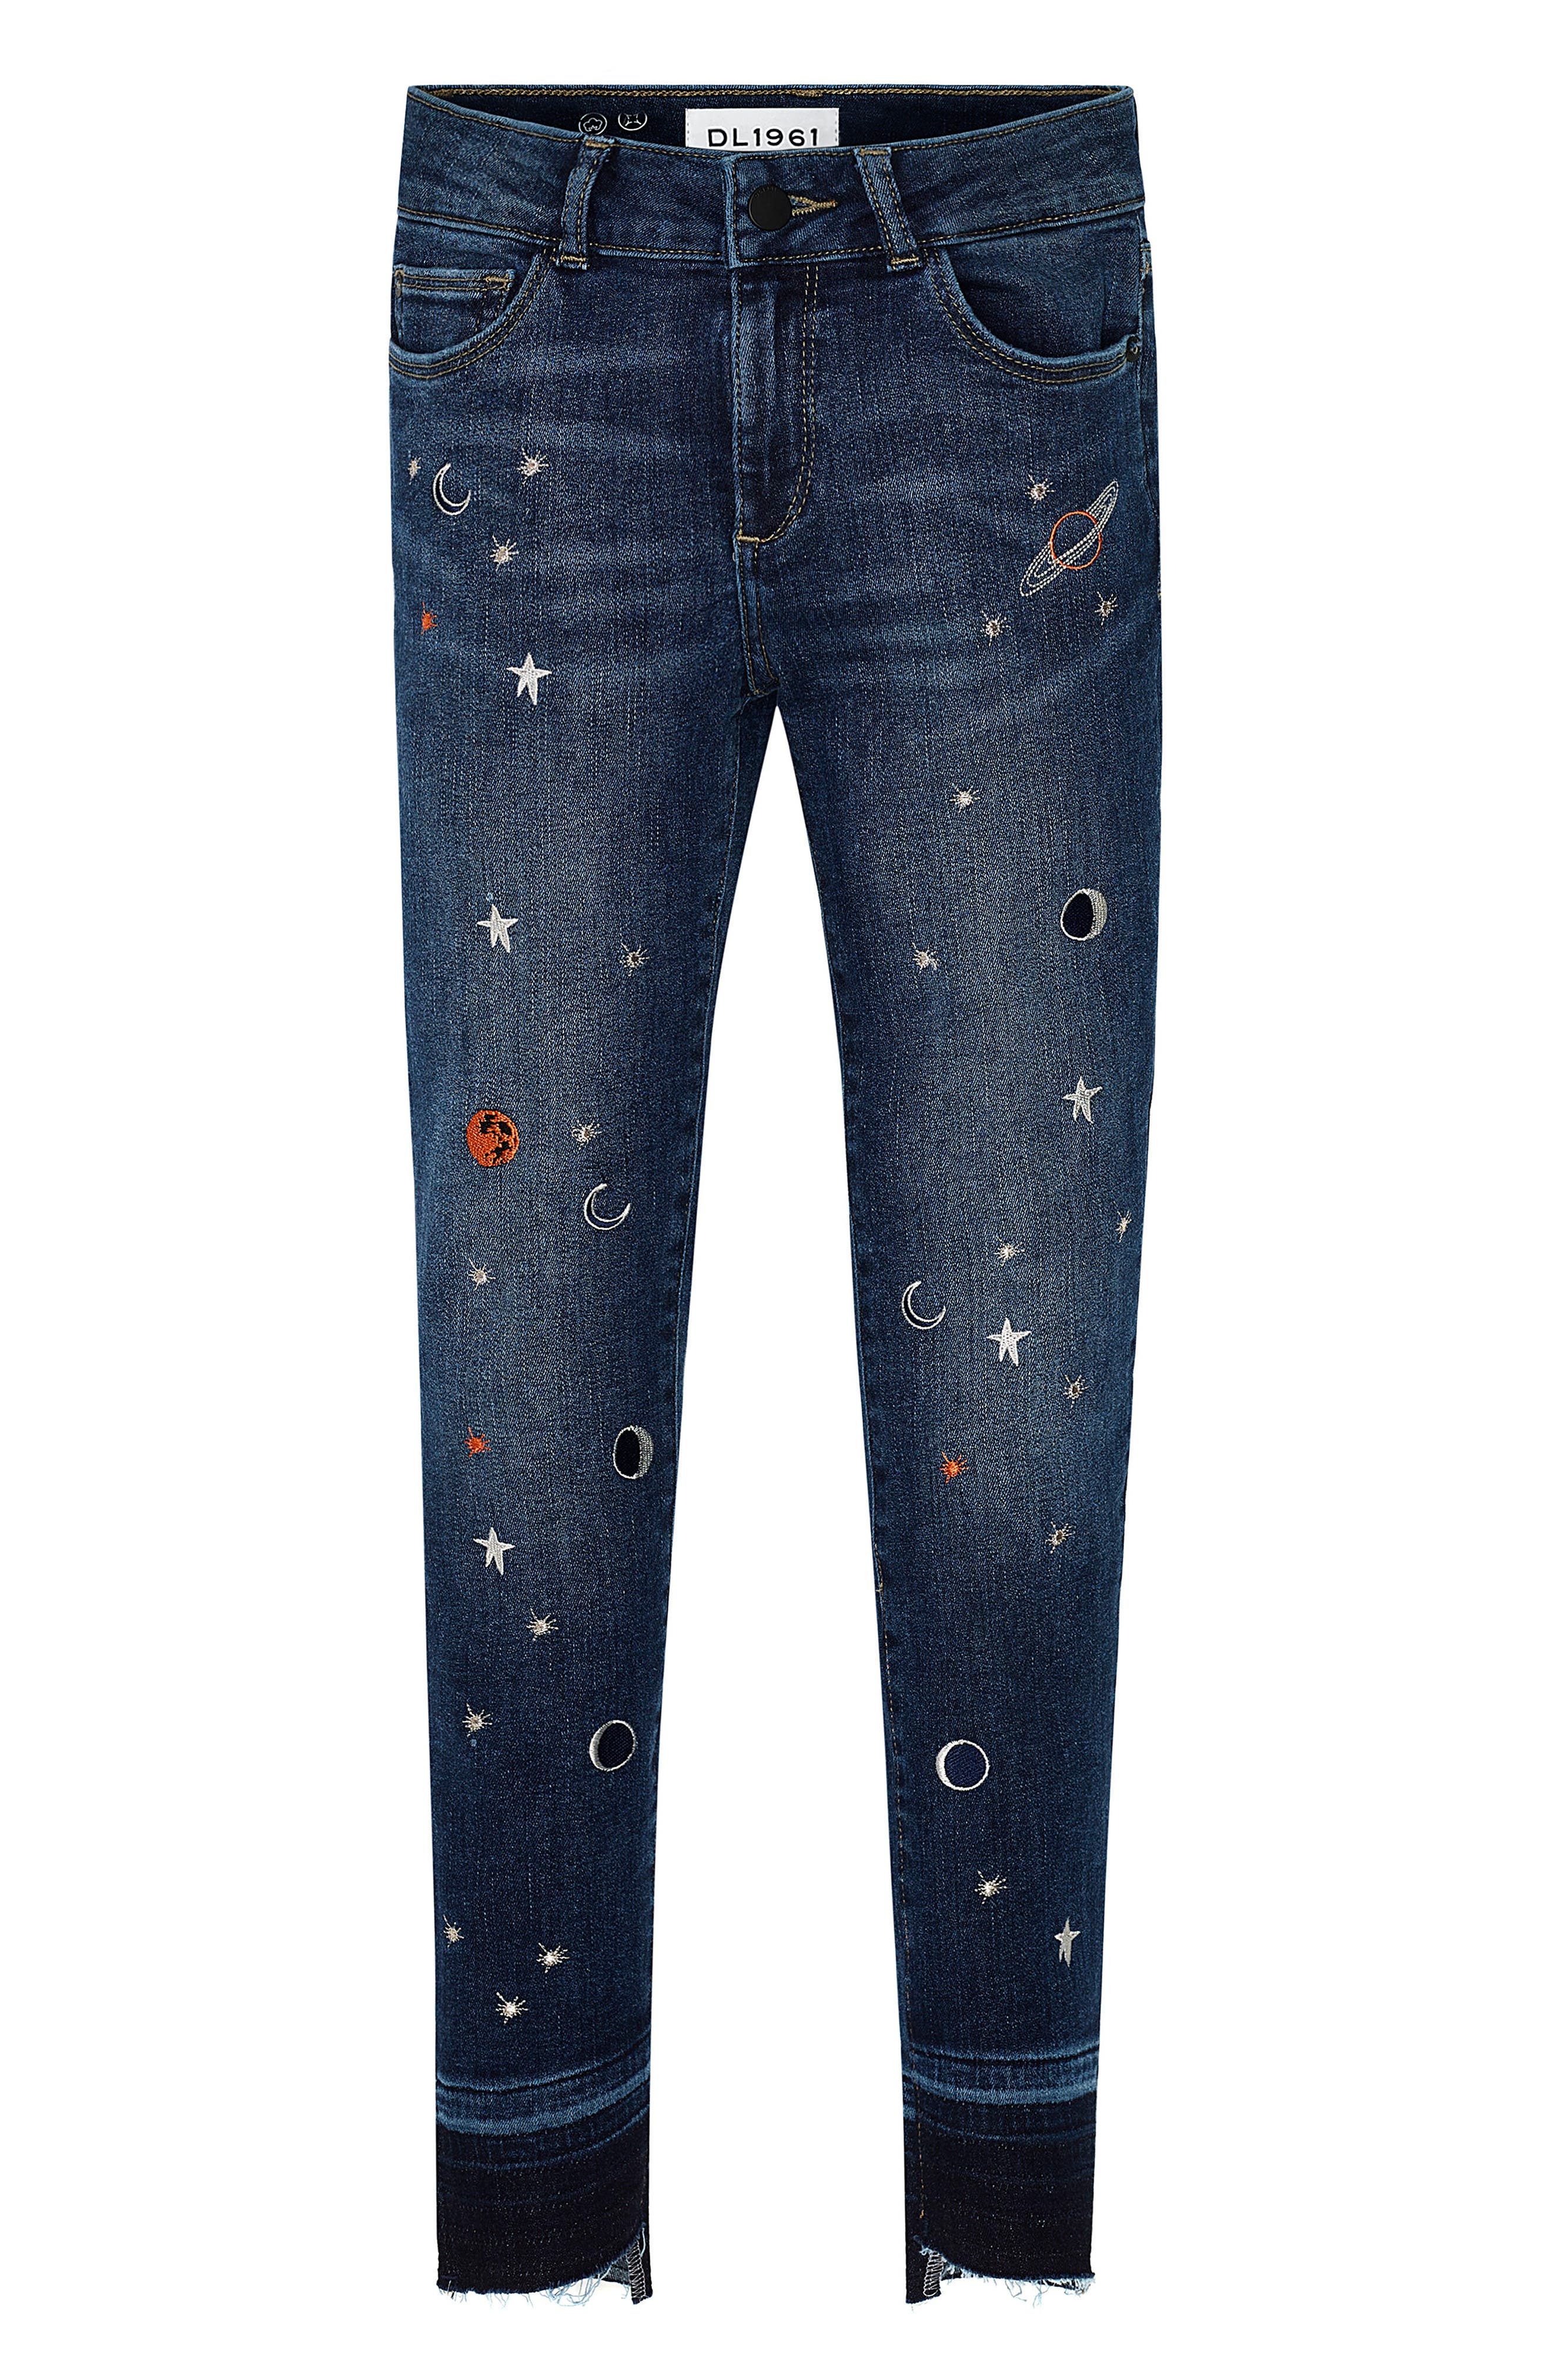 Chloe Galaxy Embroidered Skinny Jeans,                         Main,                         color, 405